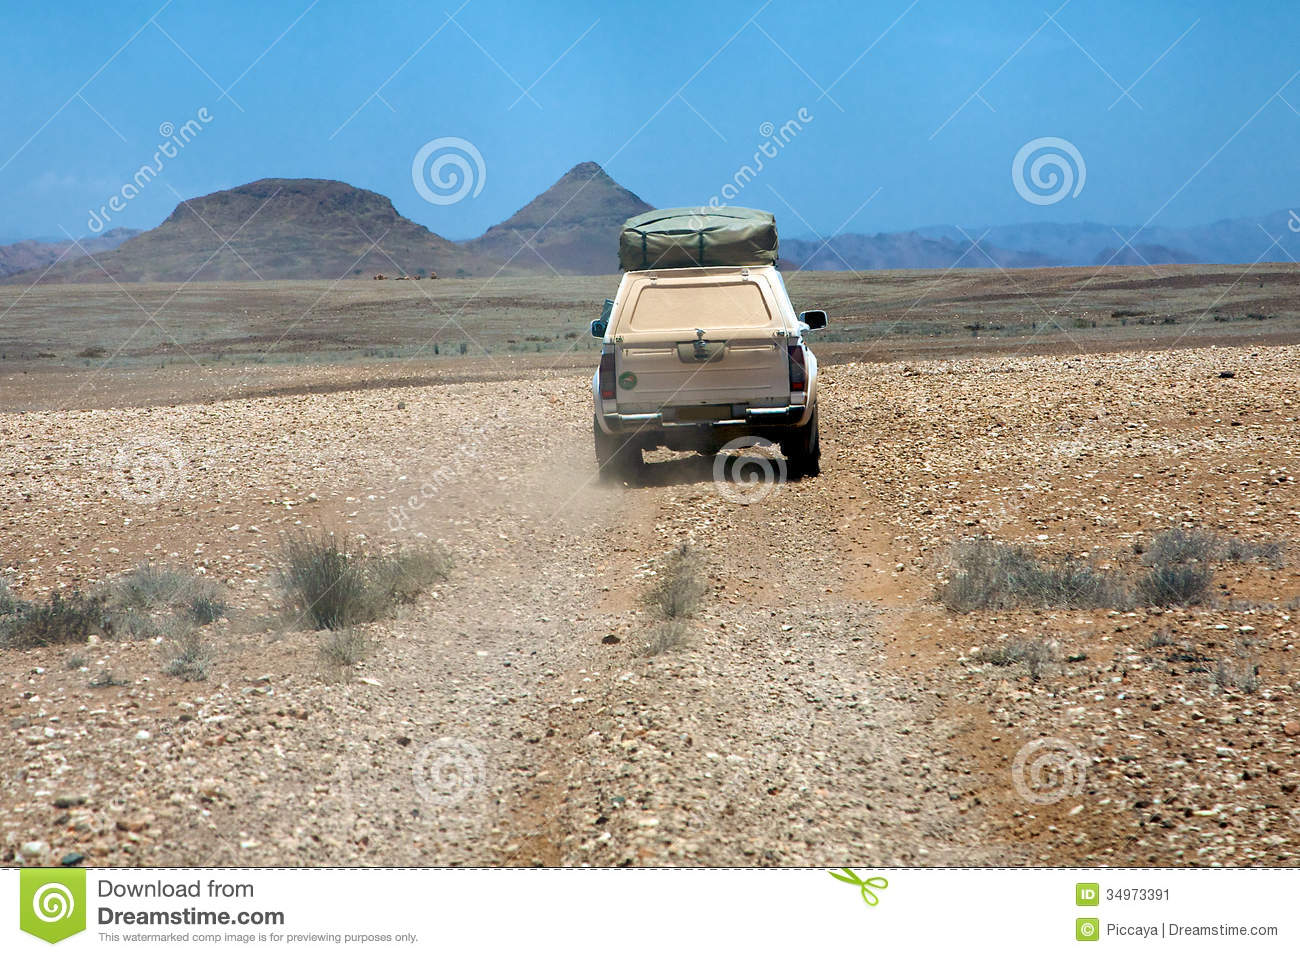 Car driving on a gravel road